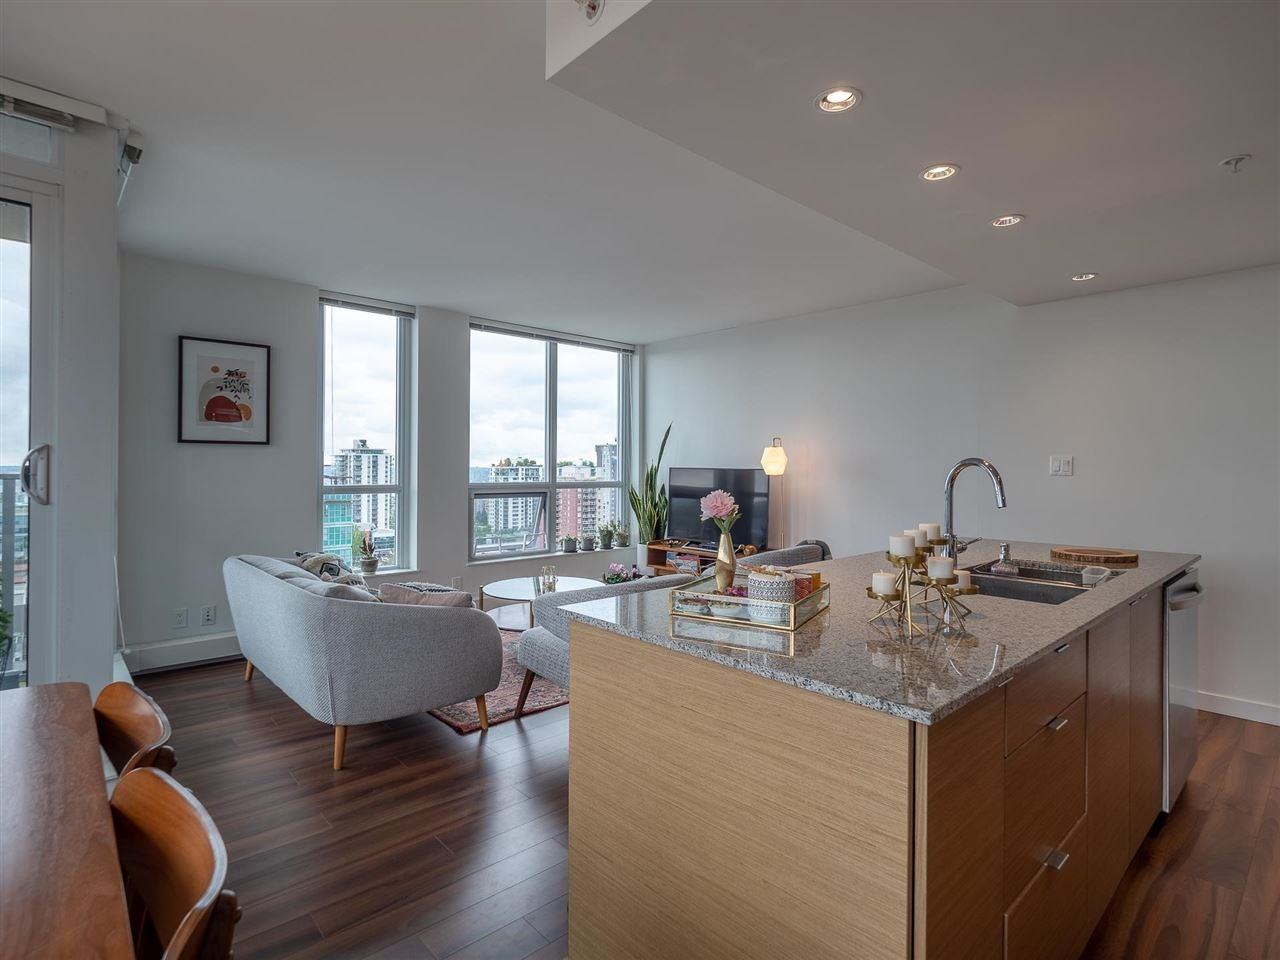 1607 135 E 17TH STREET - Central Lonsdale Apartment/Condo for sale, 1 Bedroom (R2603489) - #7